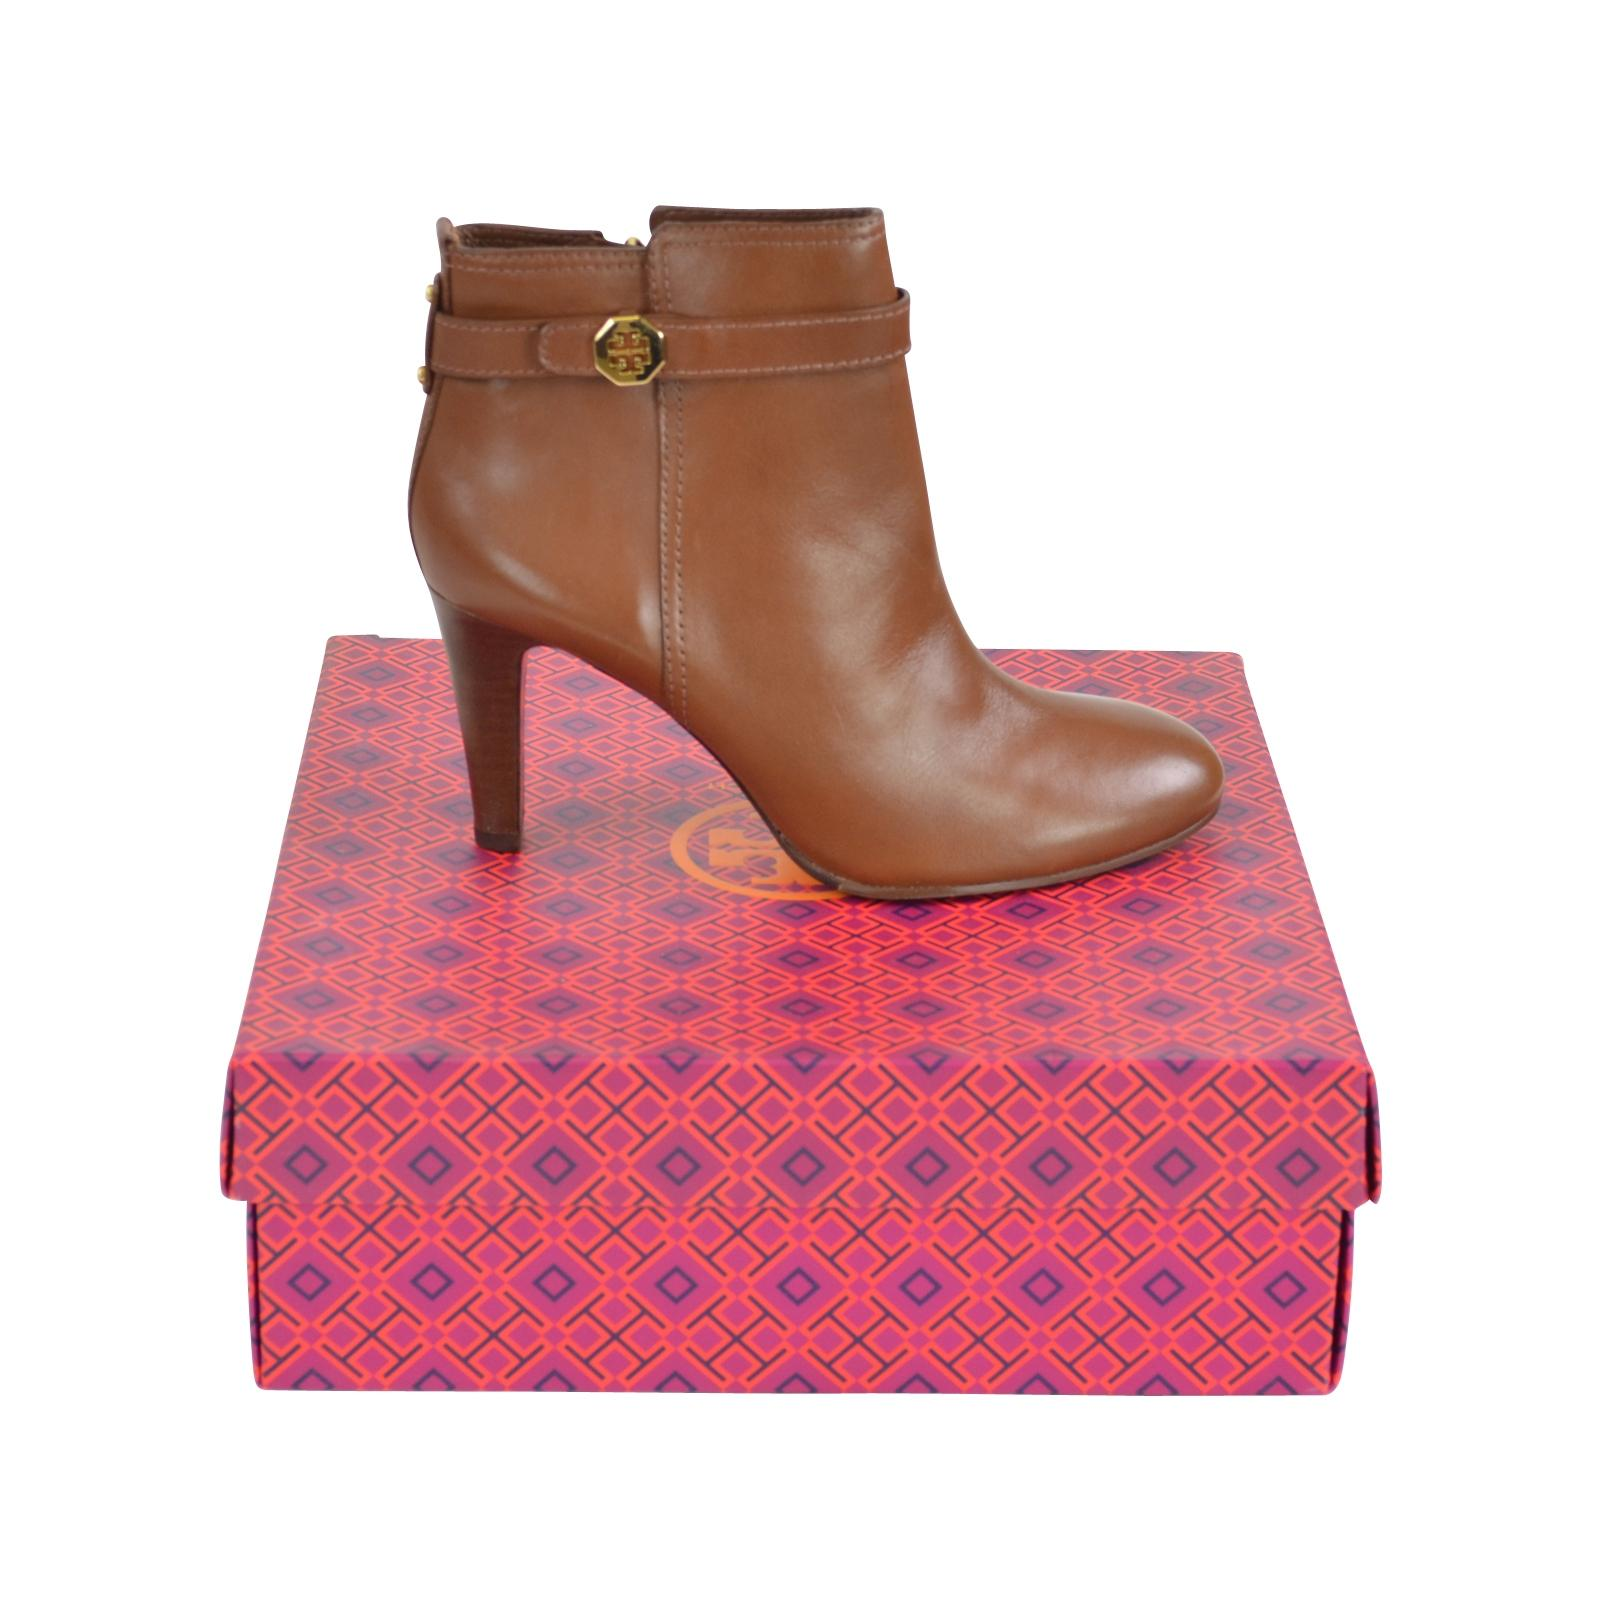 d83a4db18 Tory Burch Burch Burch Almond Brita 85mm Leather Ankle Heels Boots Booties Size  US 8.5 Regular (M